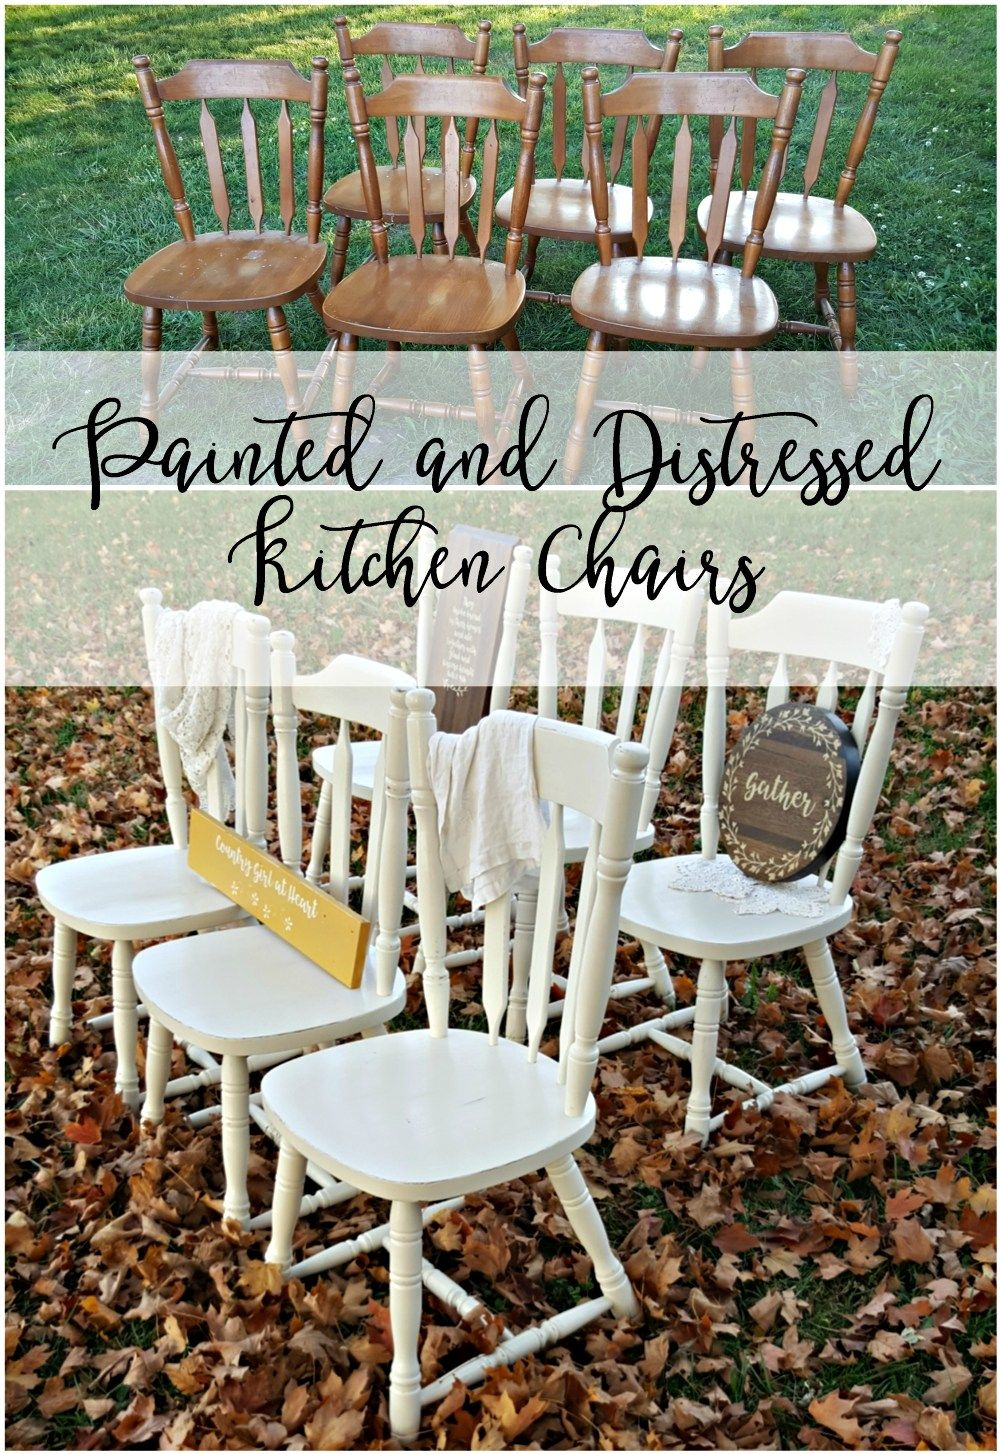 Painted and distressed kitchen chairs repurposing furniture ideas